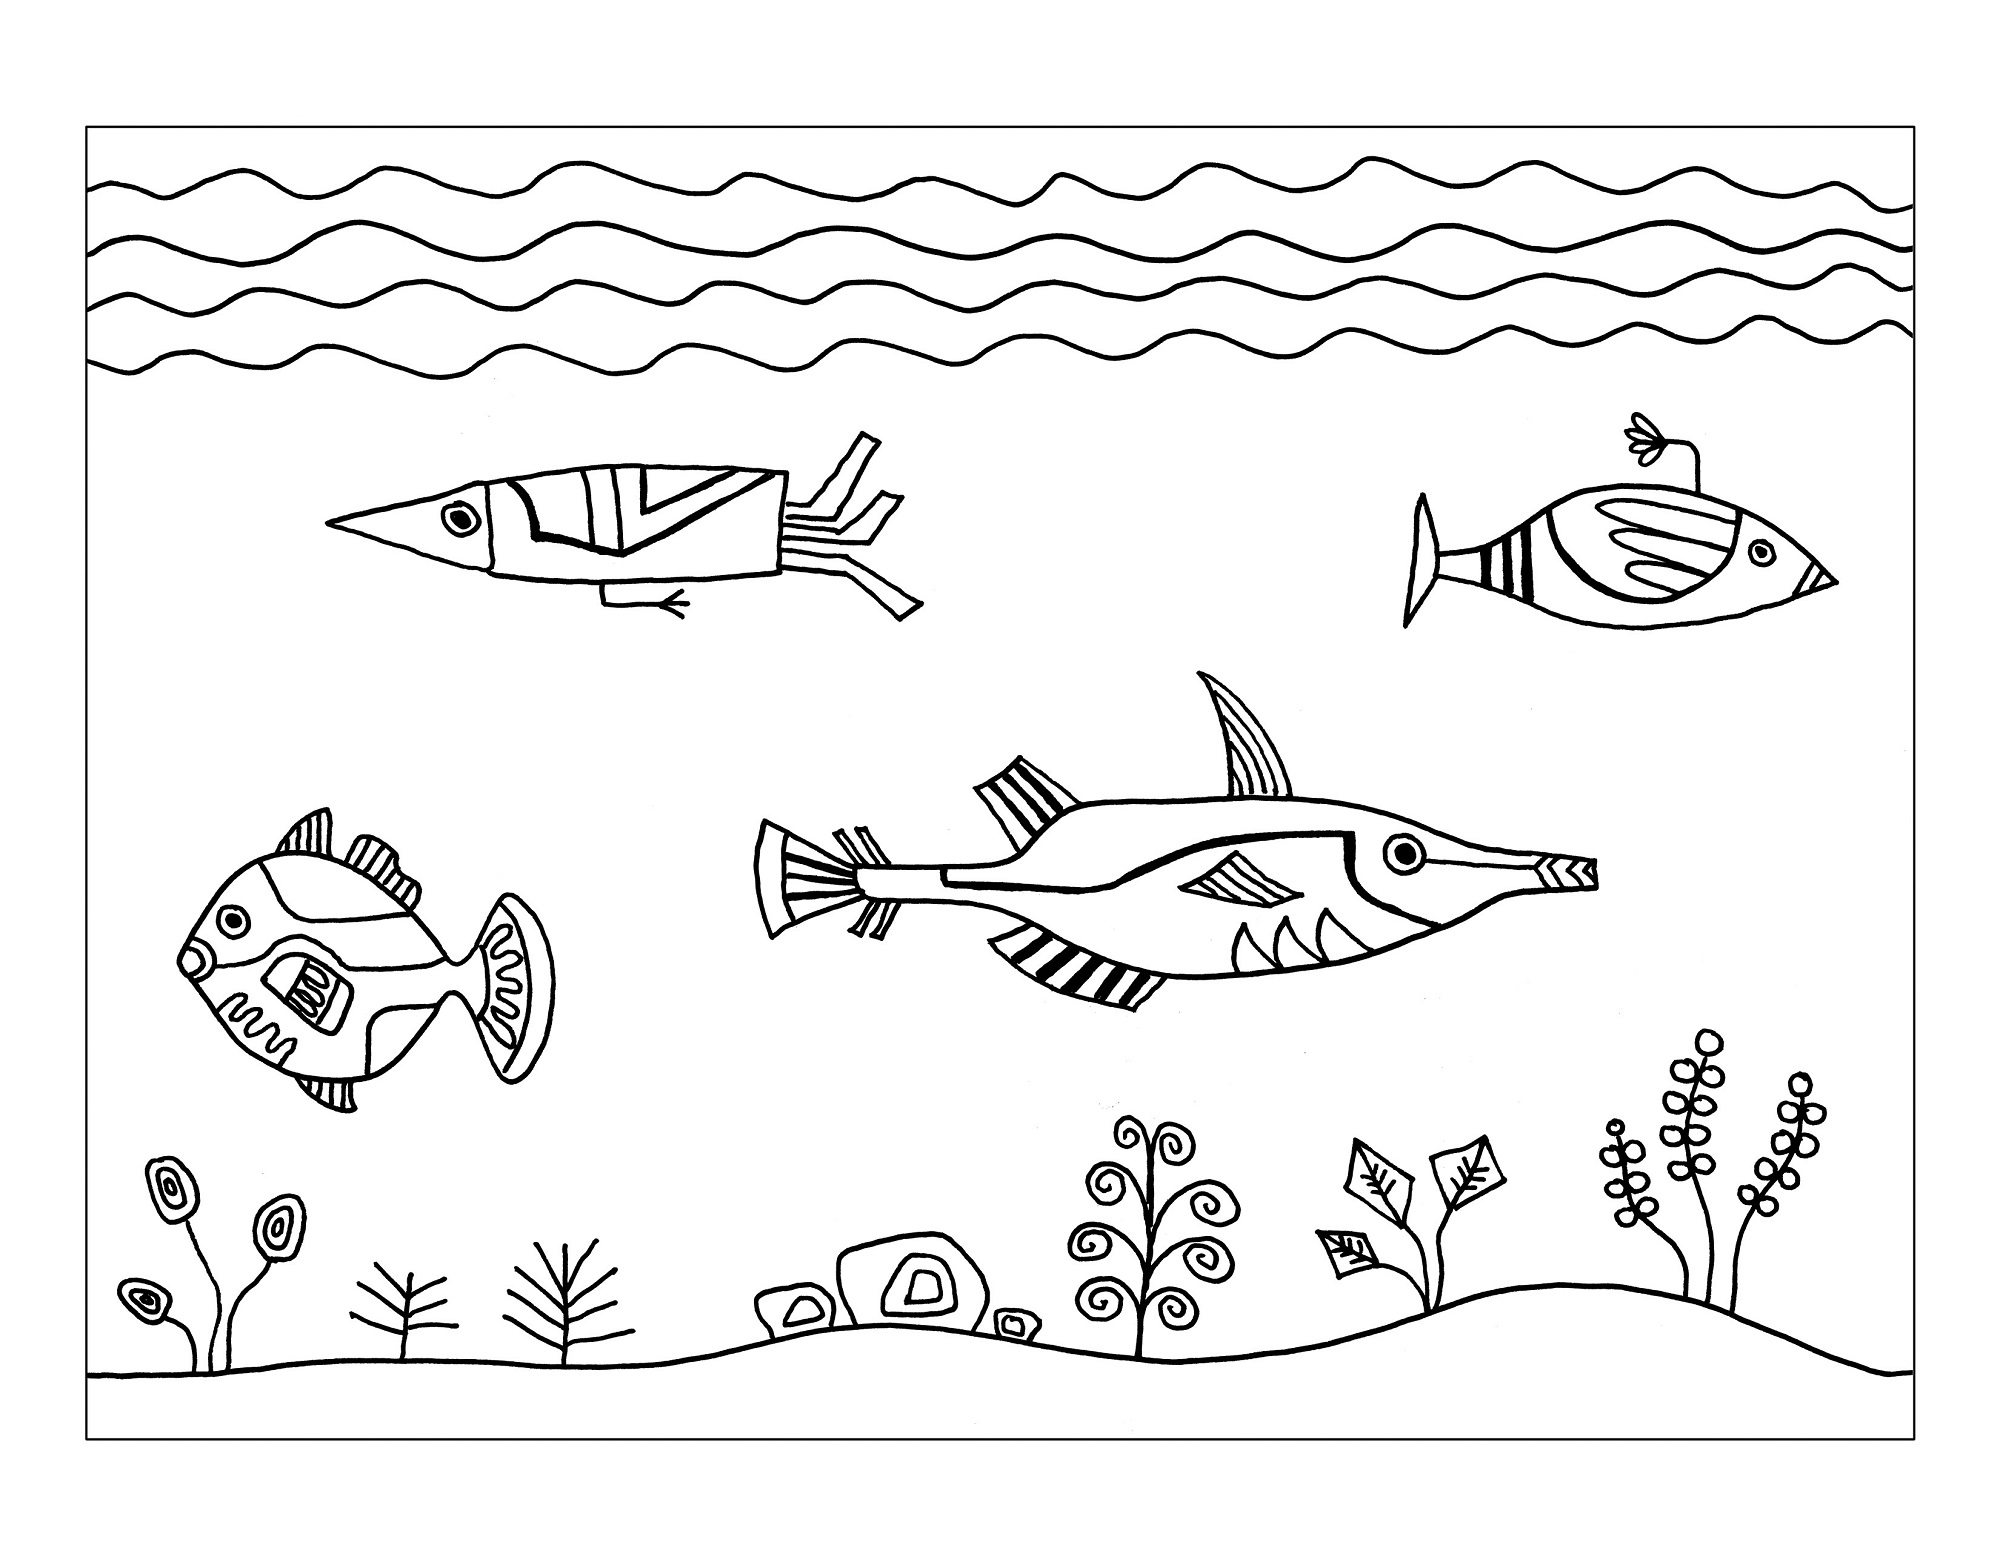 Easy Fun Fish Worksheets For Kids Coloring Learning